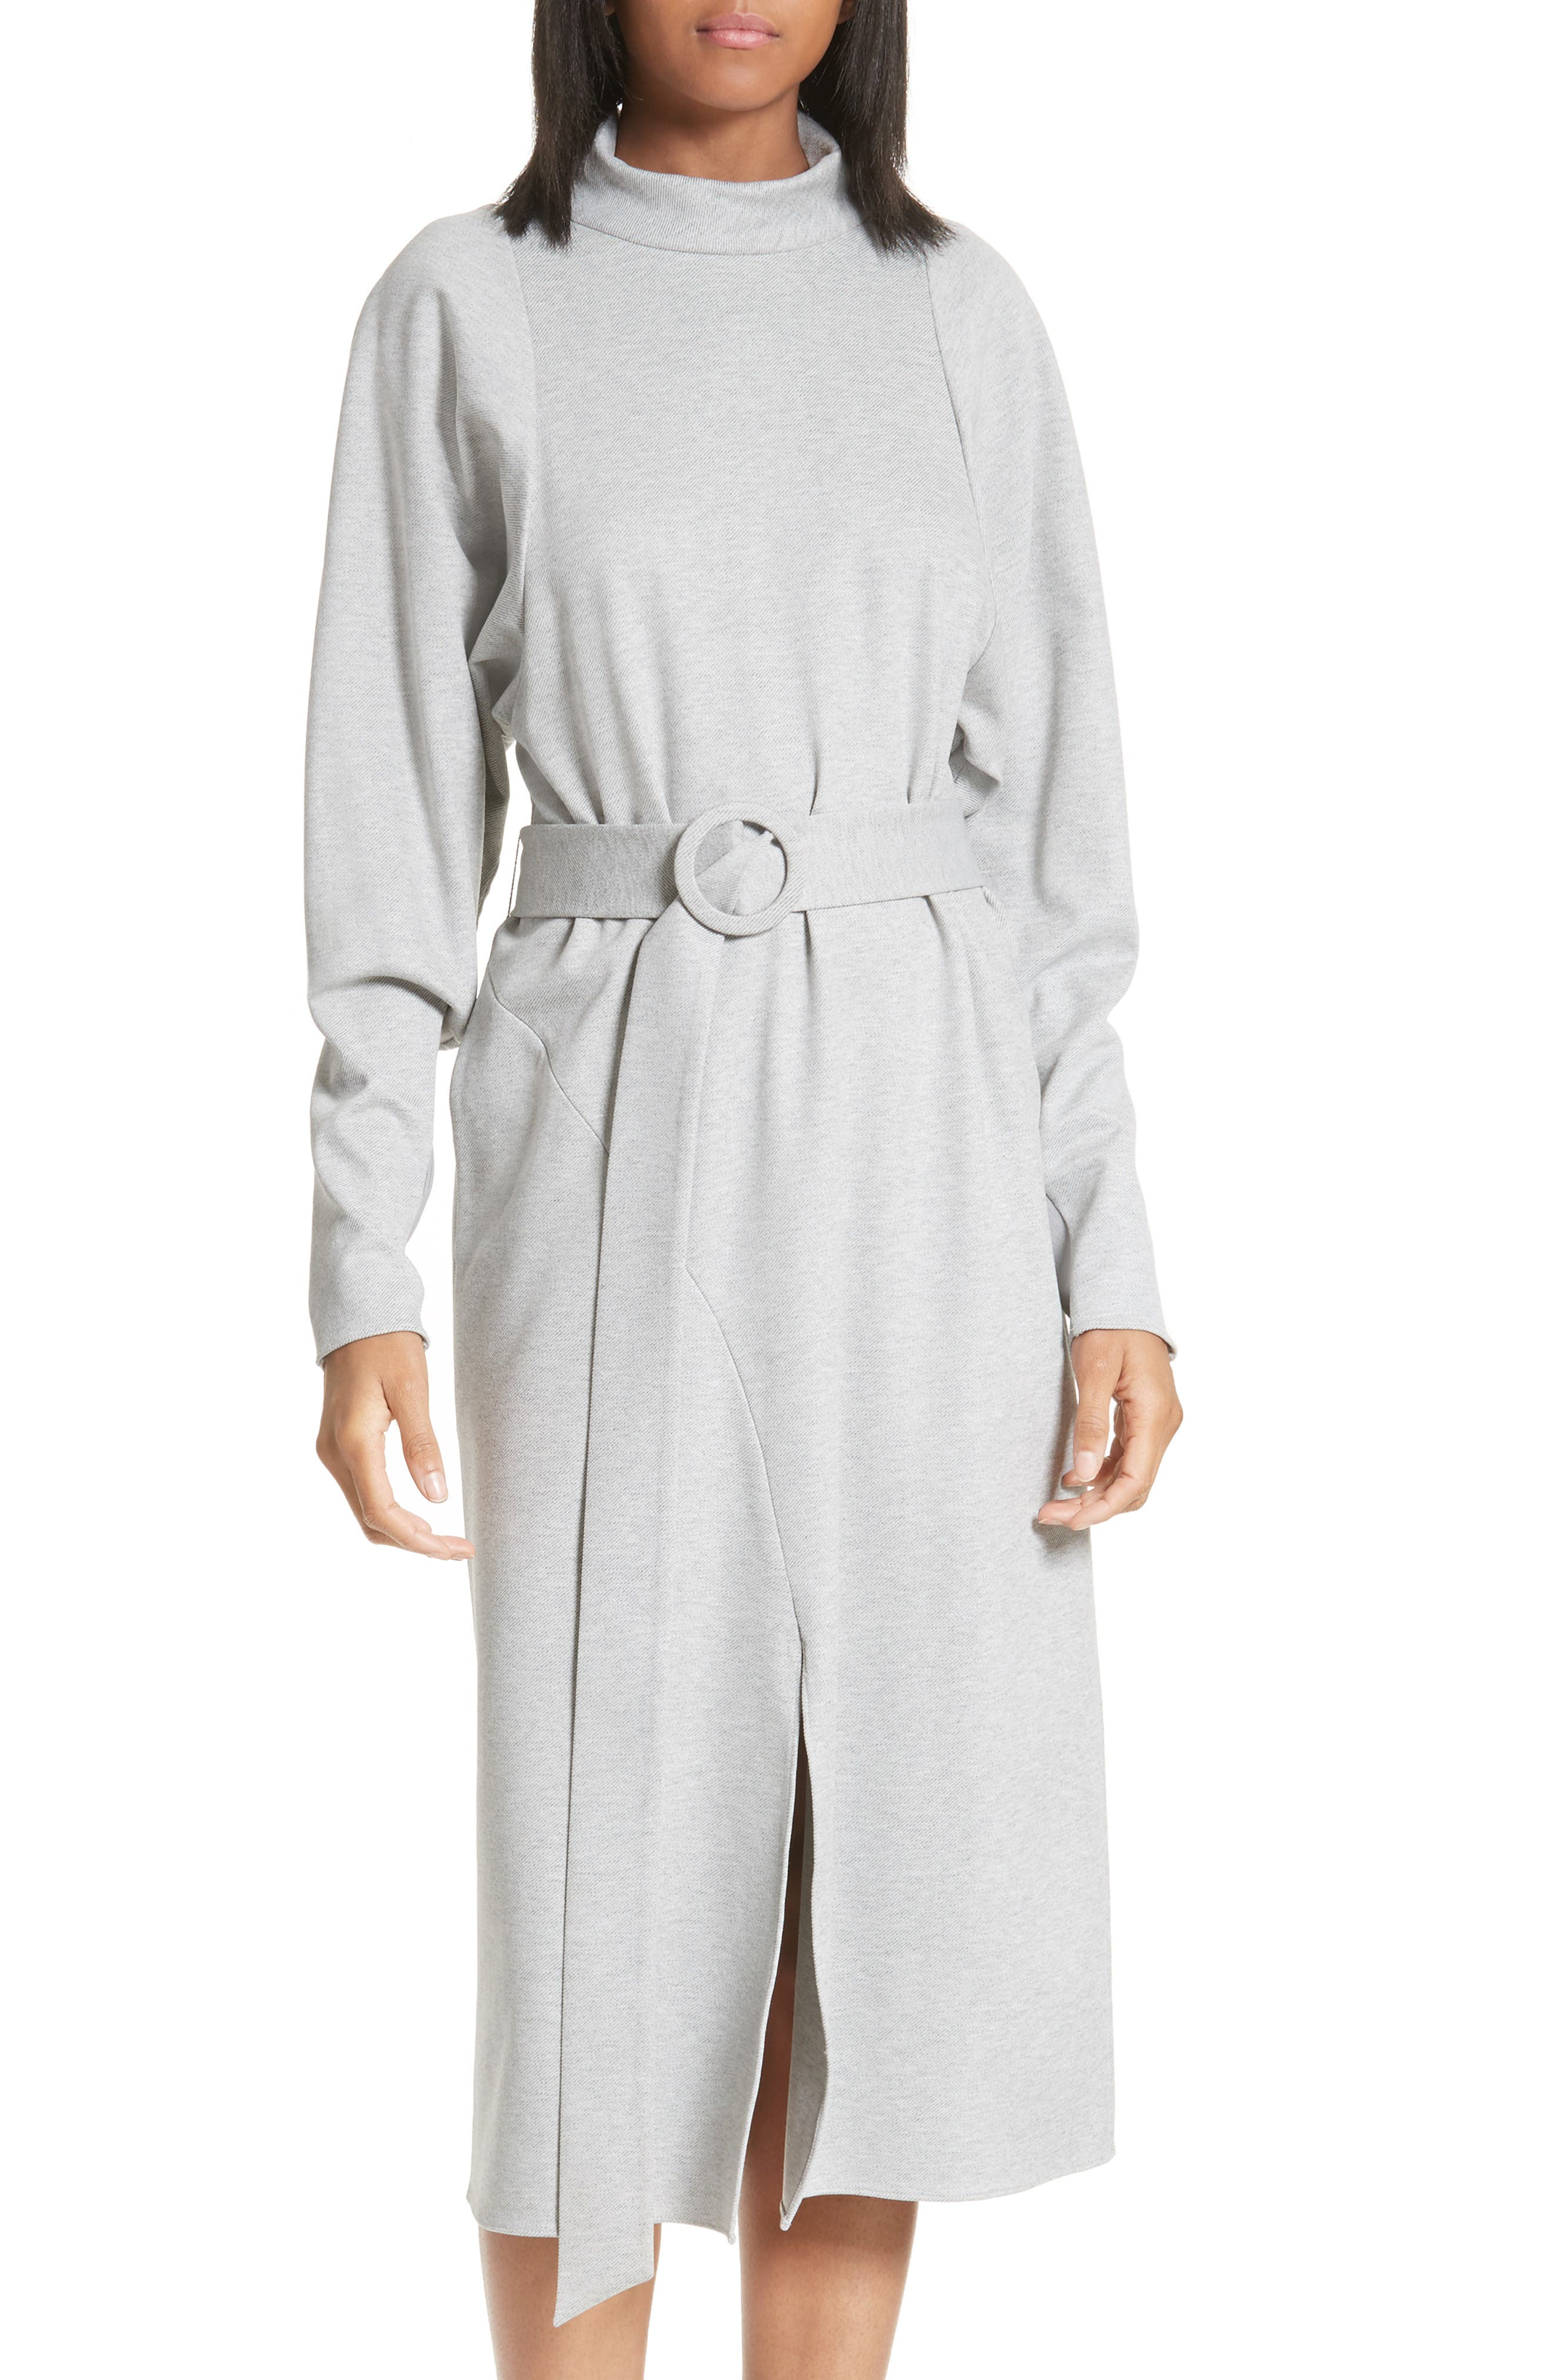 Alternate Image 1 Selected - Tibi Dolman Sleeve Stretch Twill Midi Dress